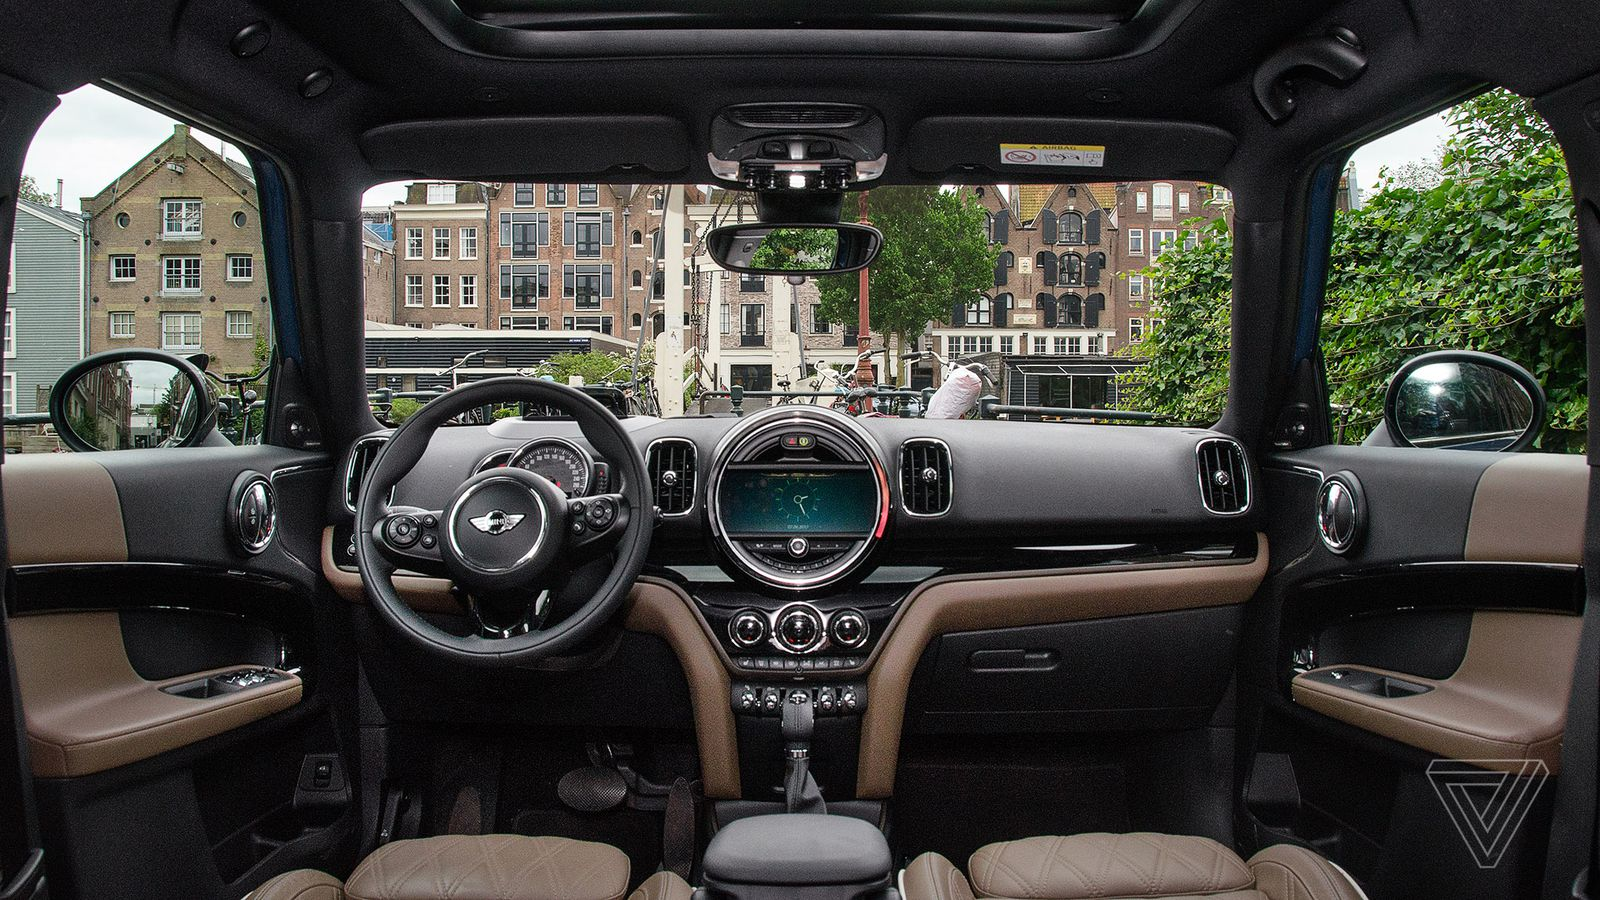 theverge.com - The Mini Cooper S Countryman is the ultimate '90s gadget